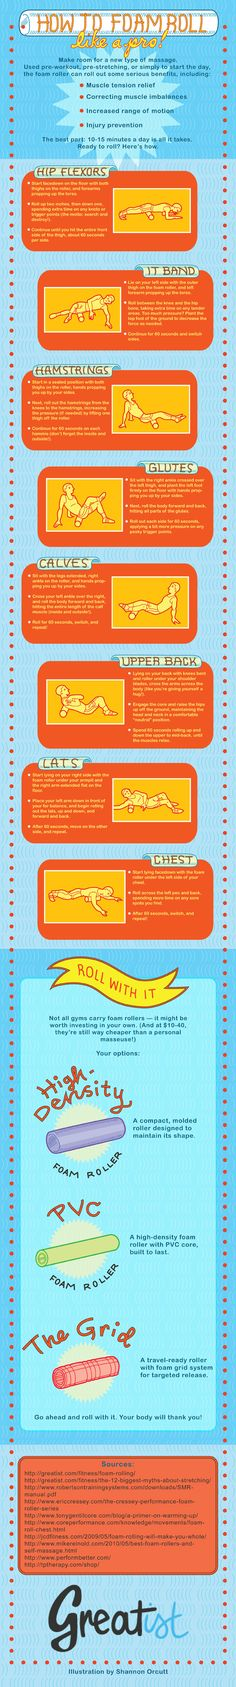 "How to FoamRoll! Great tips from ""Greatist"""